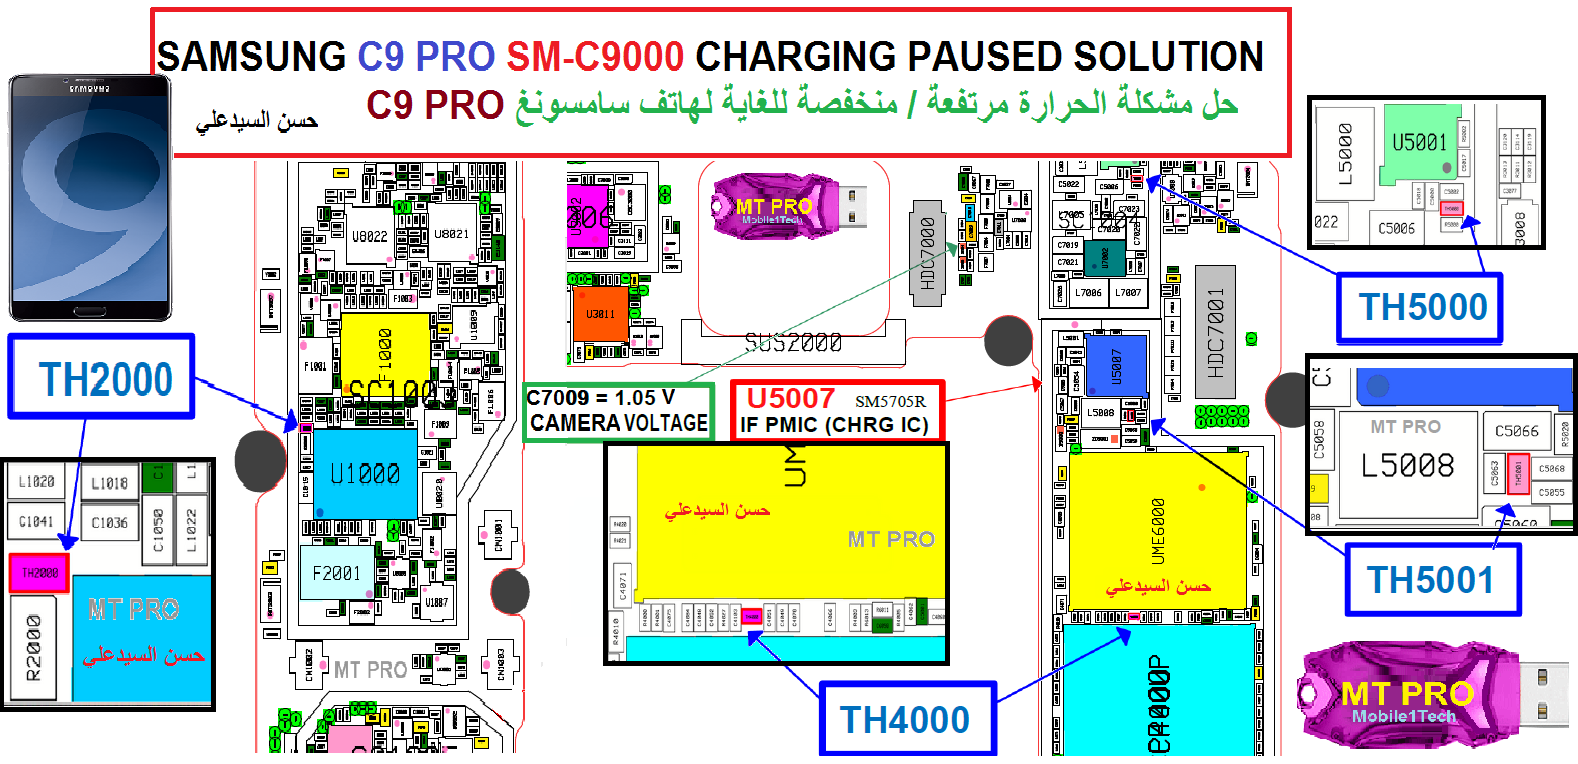 Samsung C9 Pro Charging Paused Solution